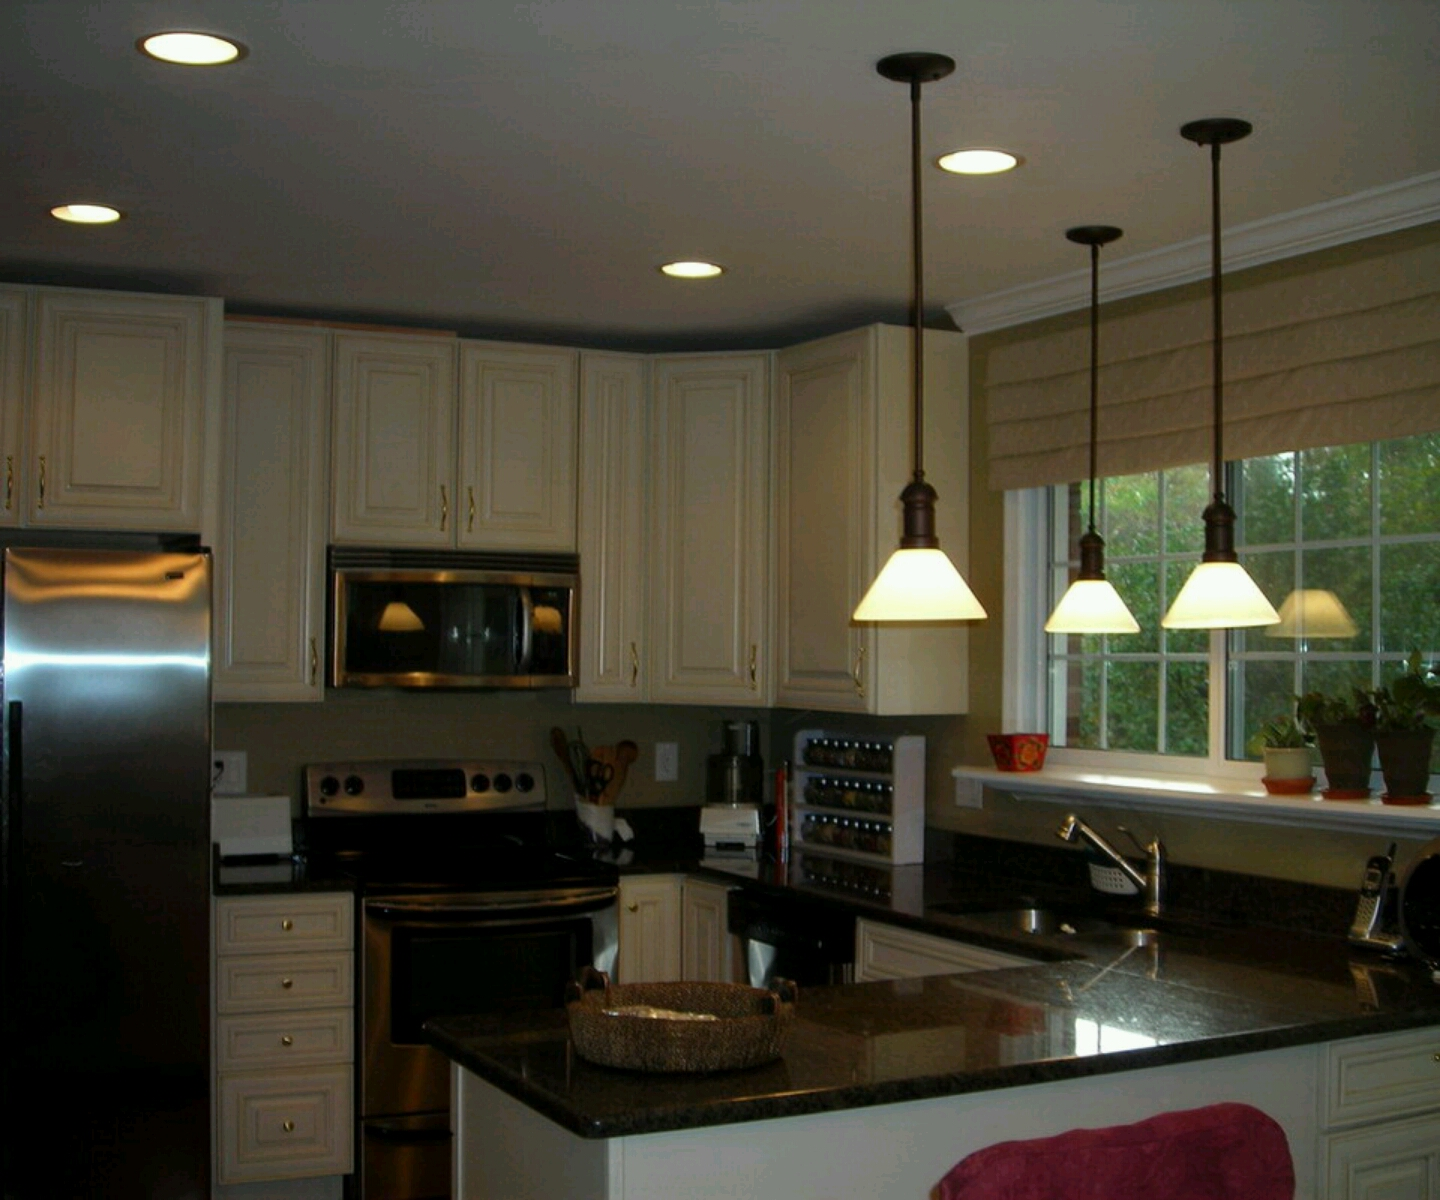 New home designs latest.: Modern home kitchen cabinet ...